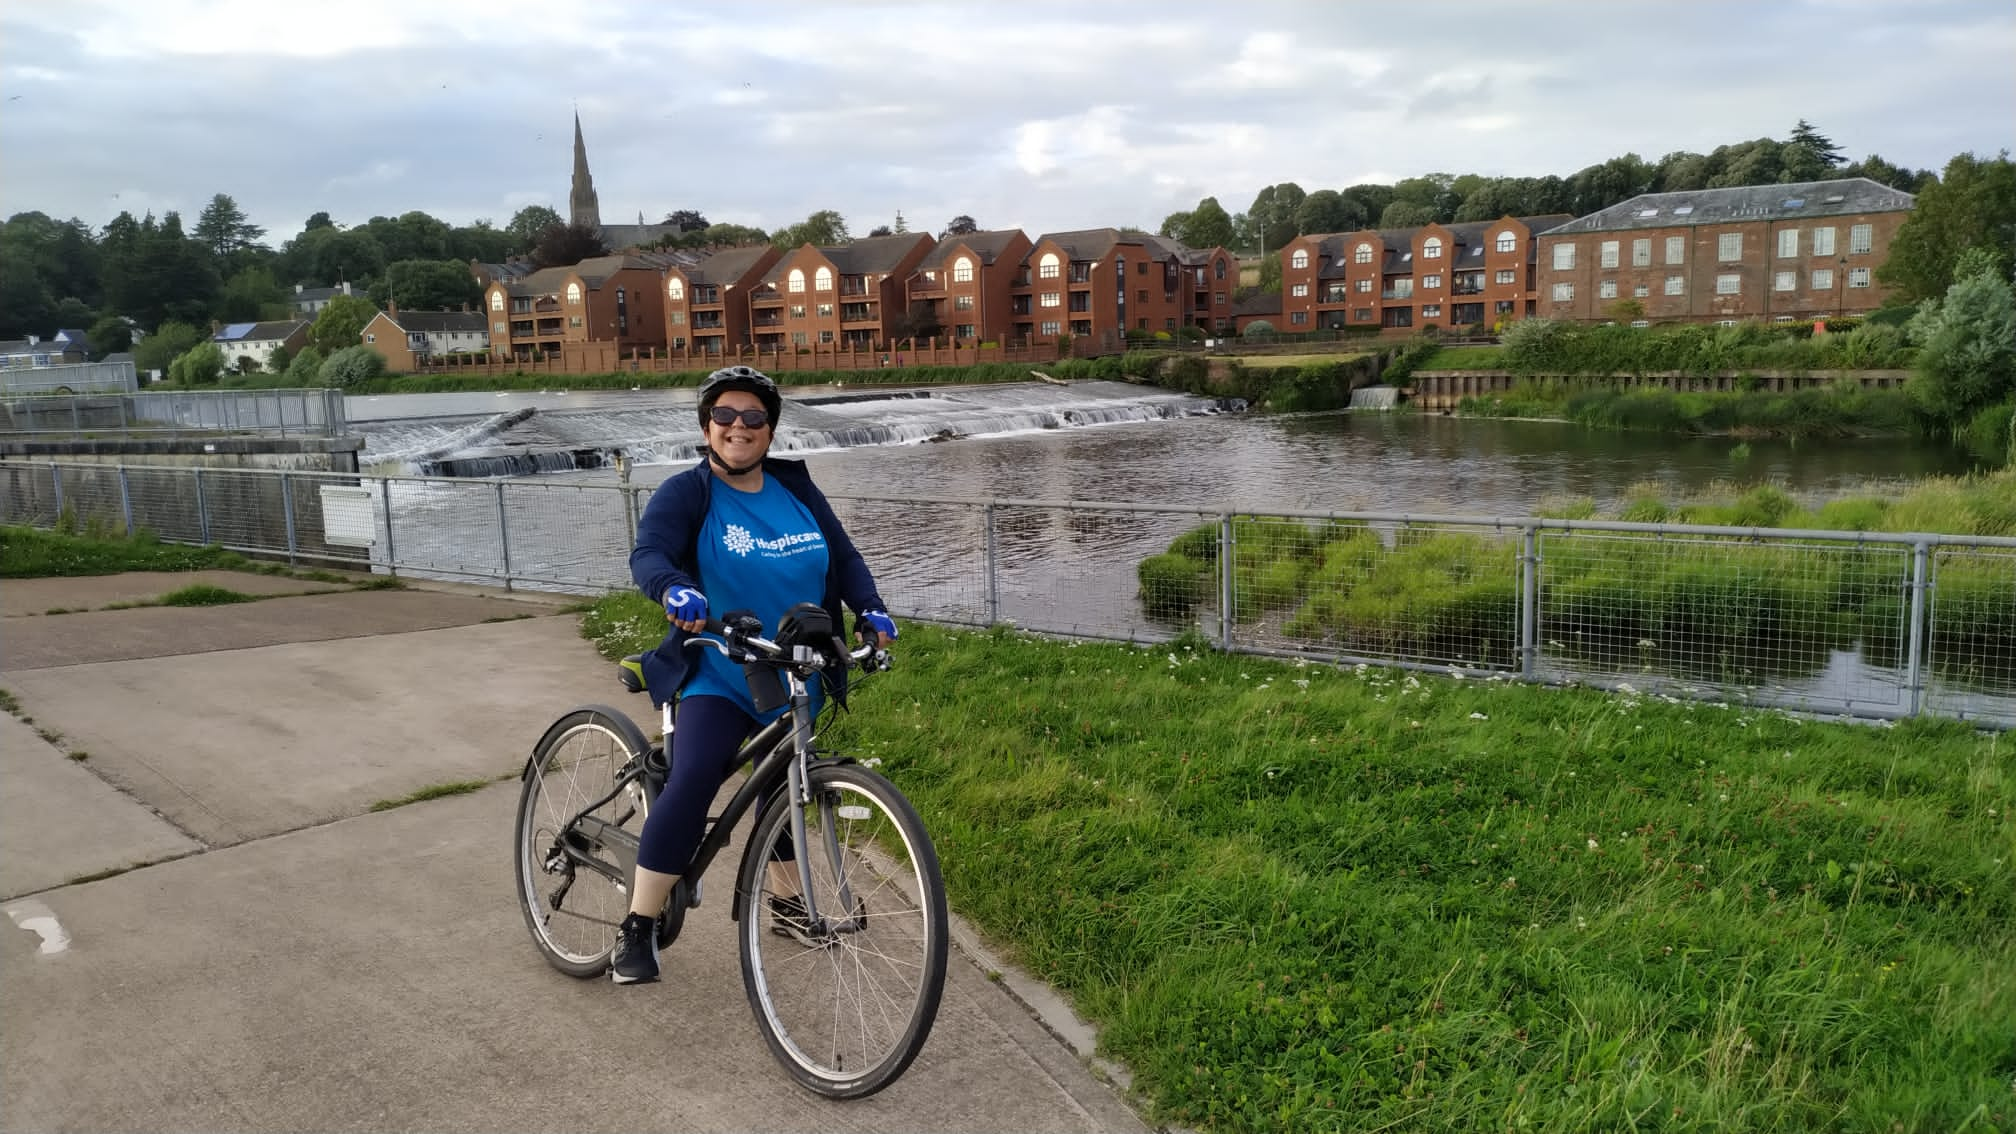 Hospiscare hero tackles 400 mile charity cycle challenge